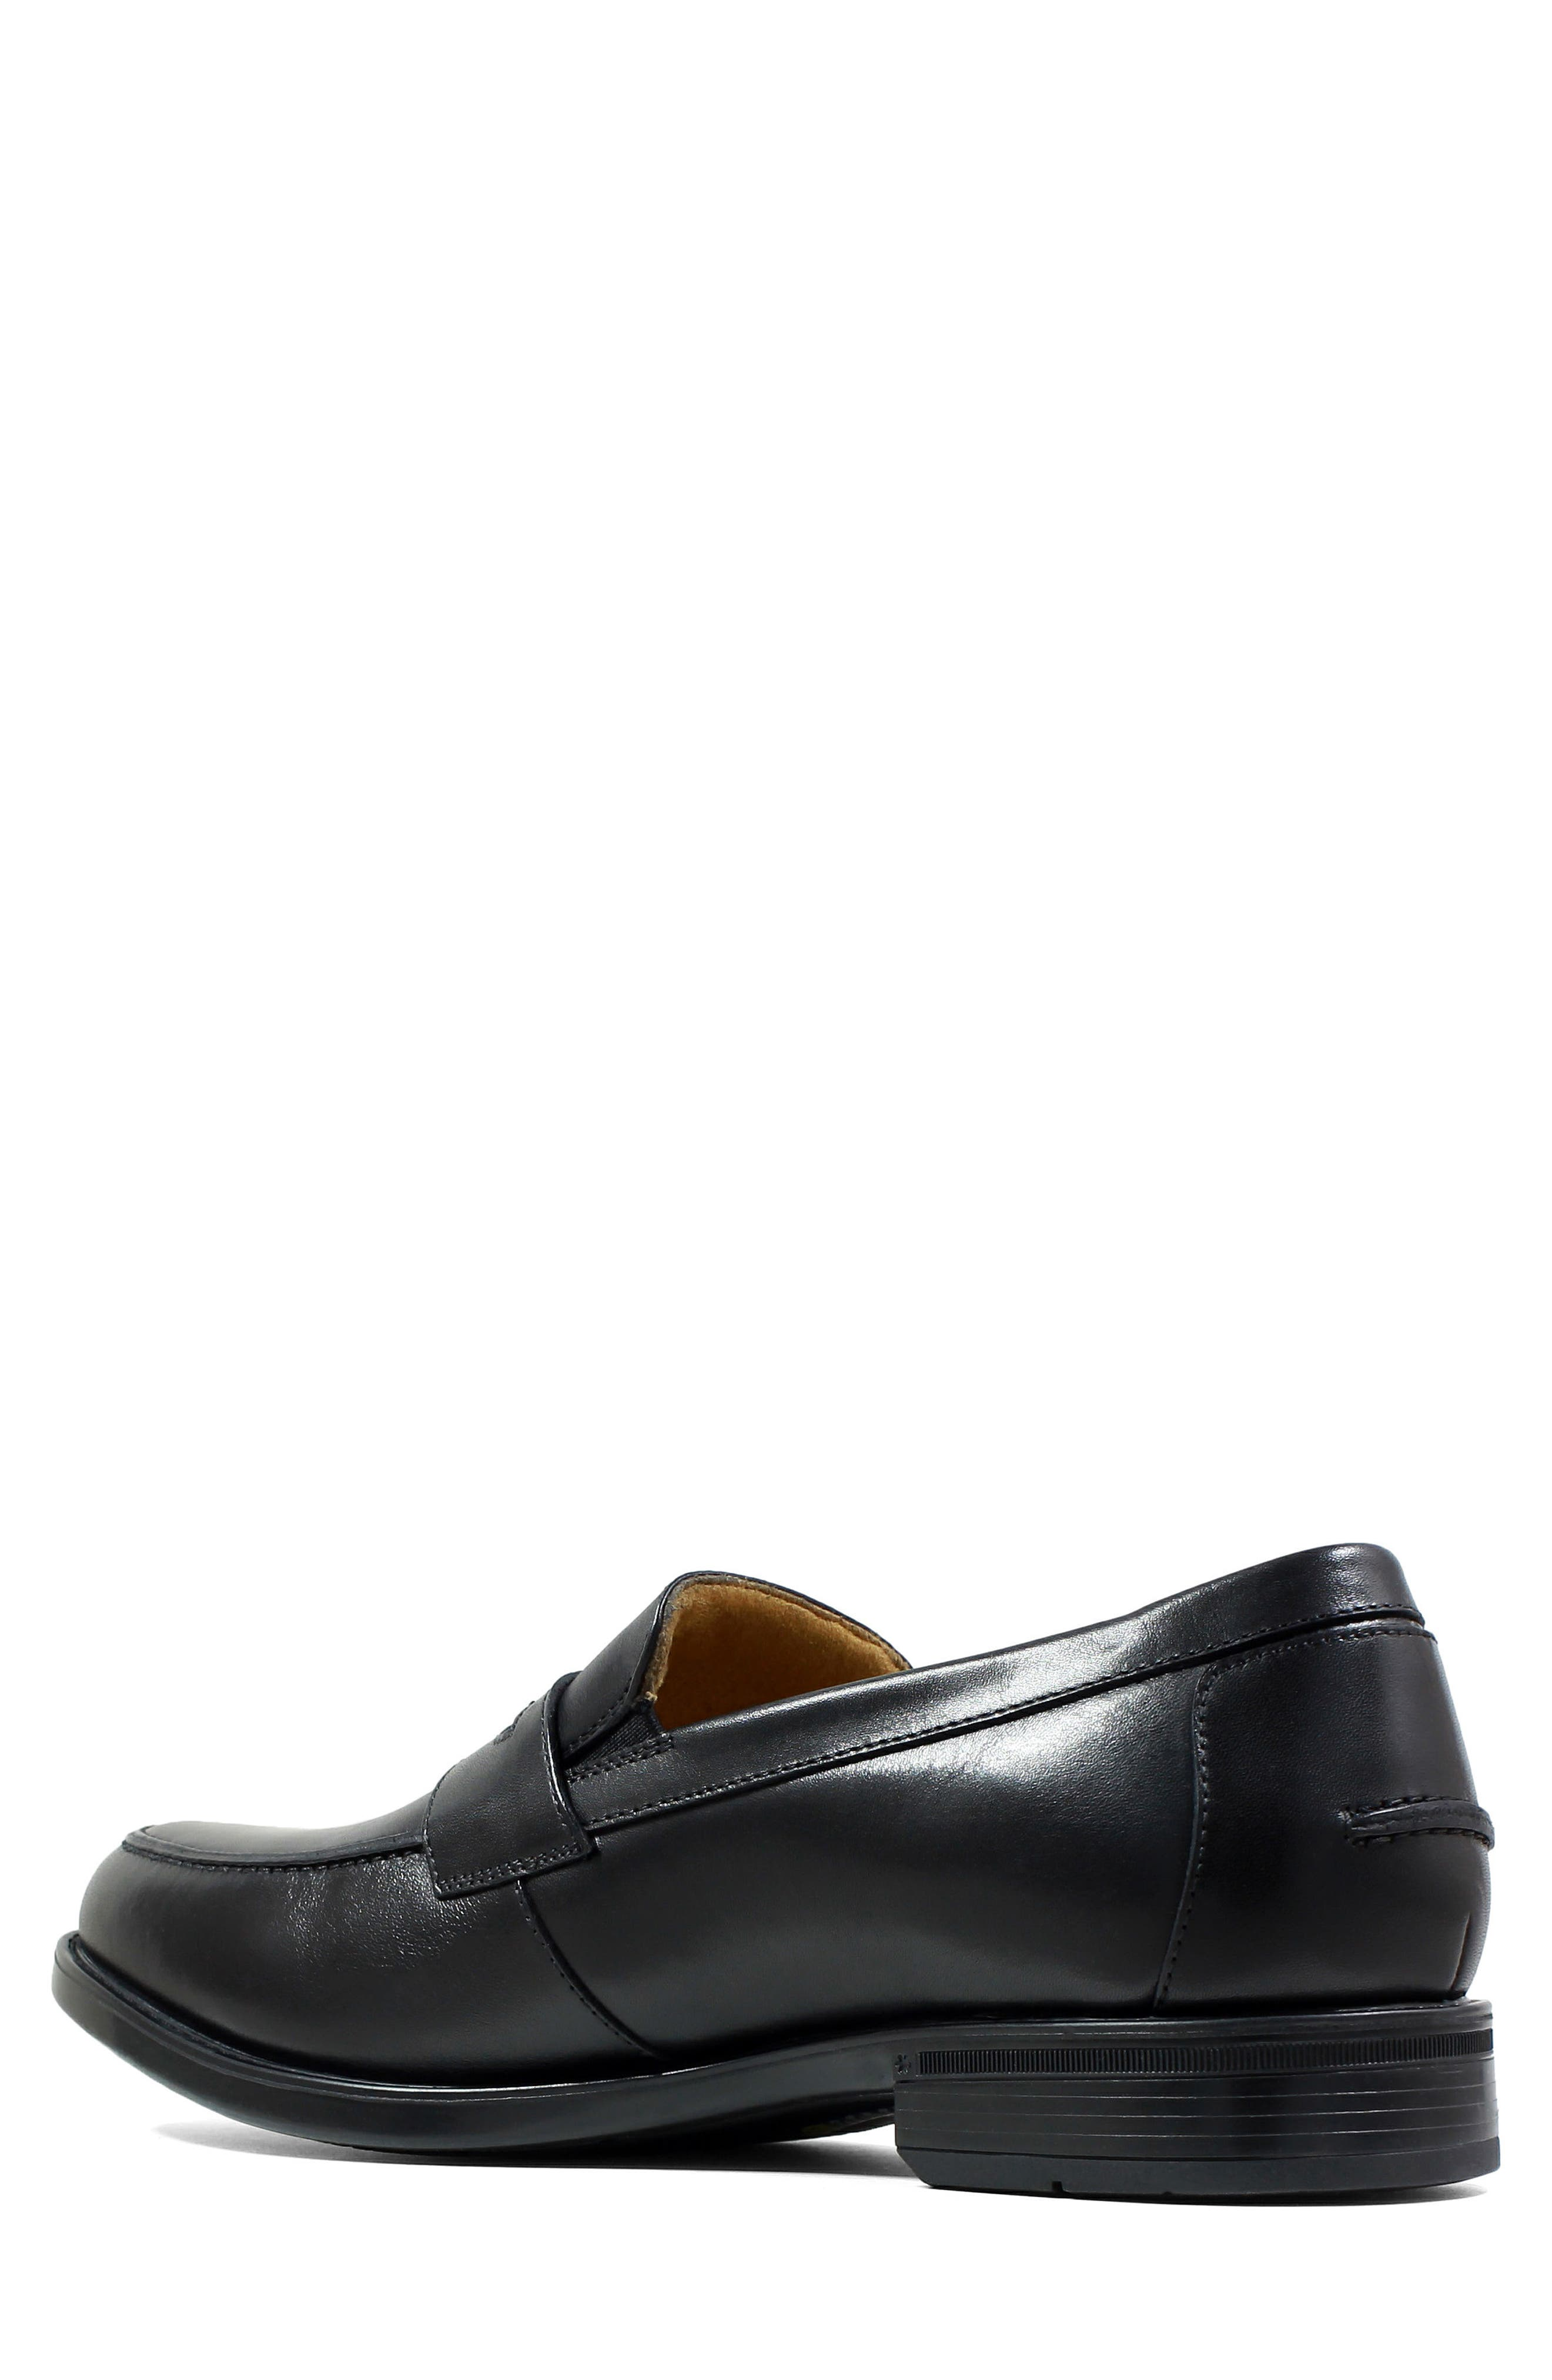 Midtown Penny Loafer,                             Alternate thumbnail 2, color,                             001